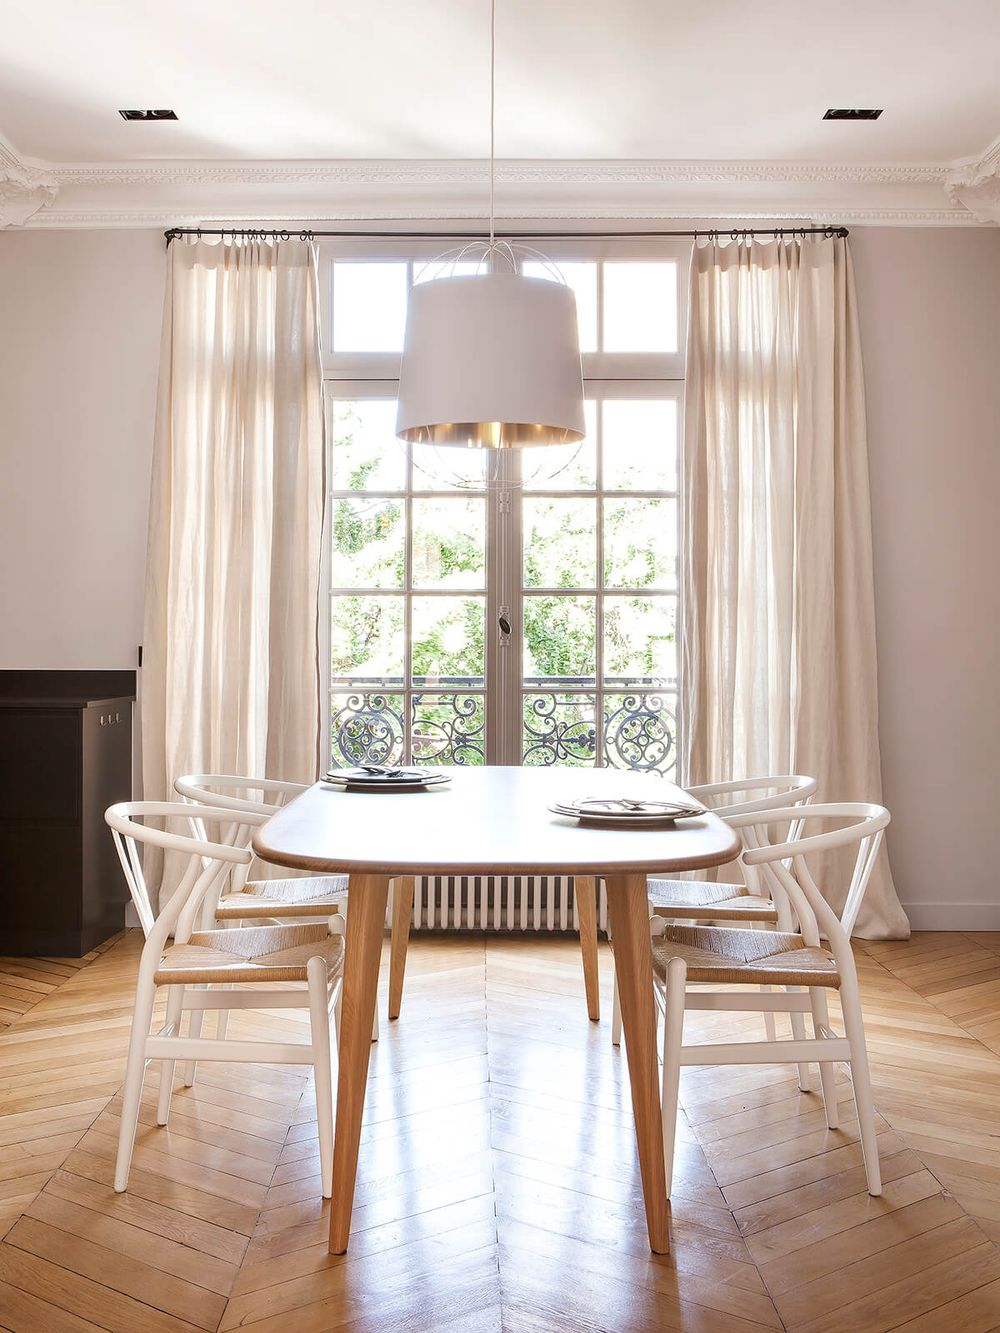 Parisian dining room decor with White wishbone chairs via Camille Hermand